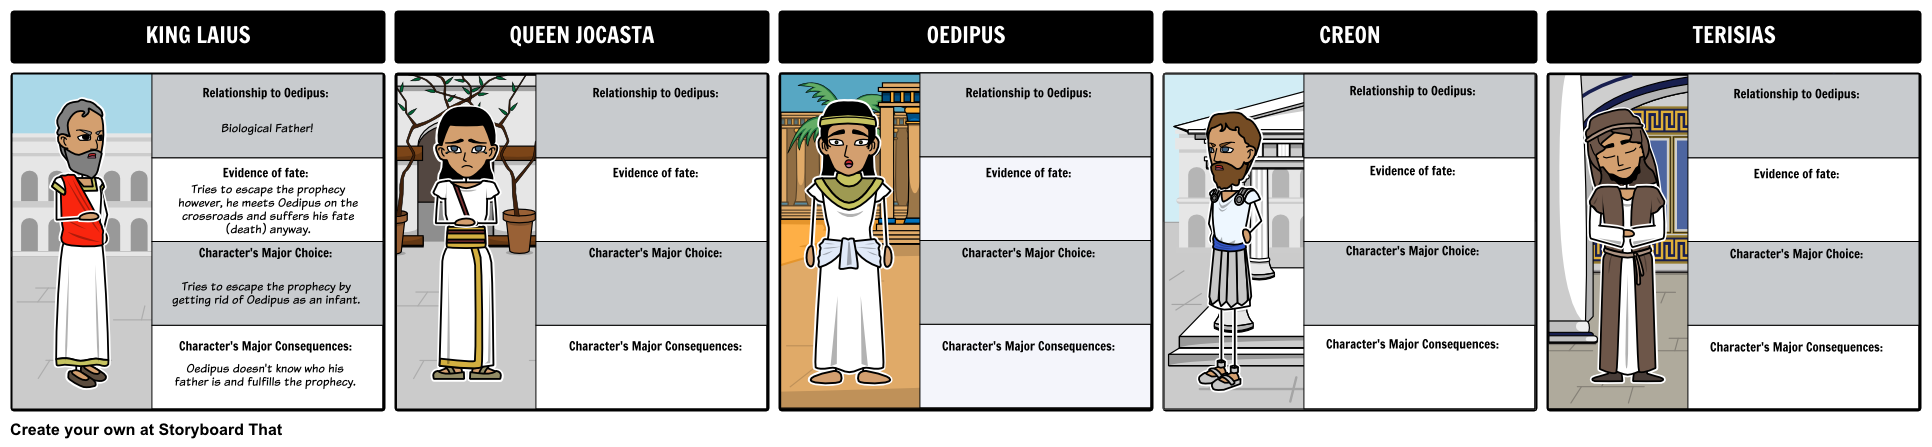 characterization of oedipus in sophocles oedipus rex Oedipus rex – characterization this essay will illustrate the types of characters  depicted in sophocles' tragic drama, oedipus rex, whether static or dynamic,.